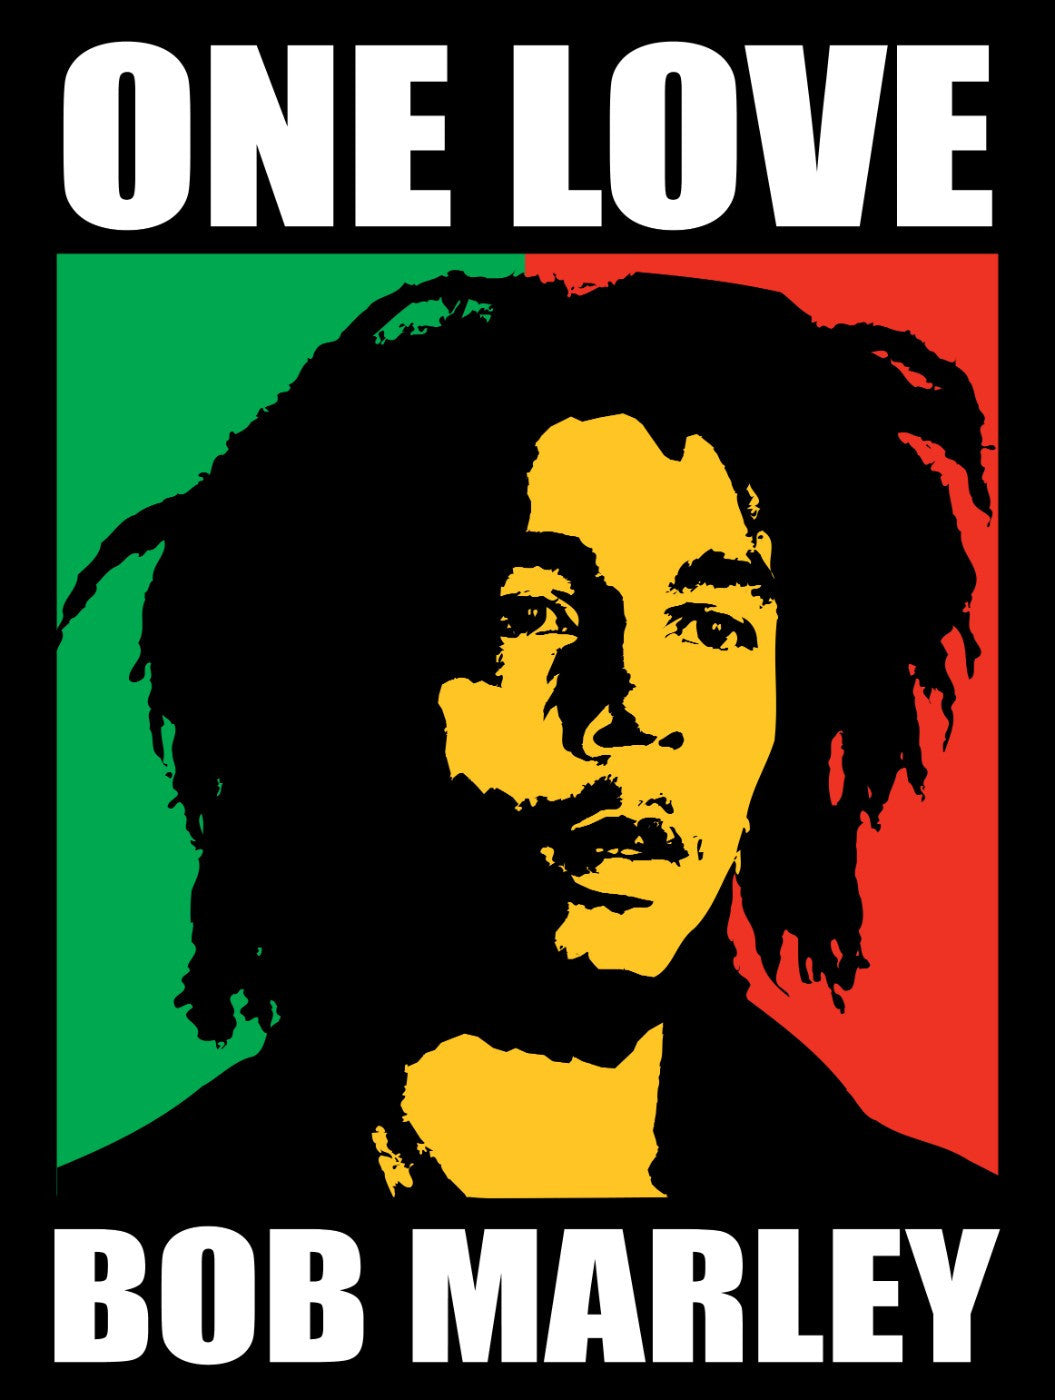 Musicians - Bob Marley - One Love - Graphic Art - Canvas Prints by ...